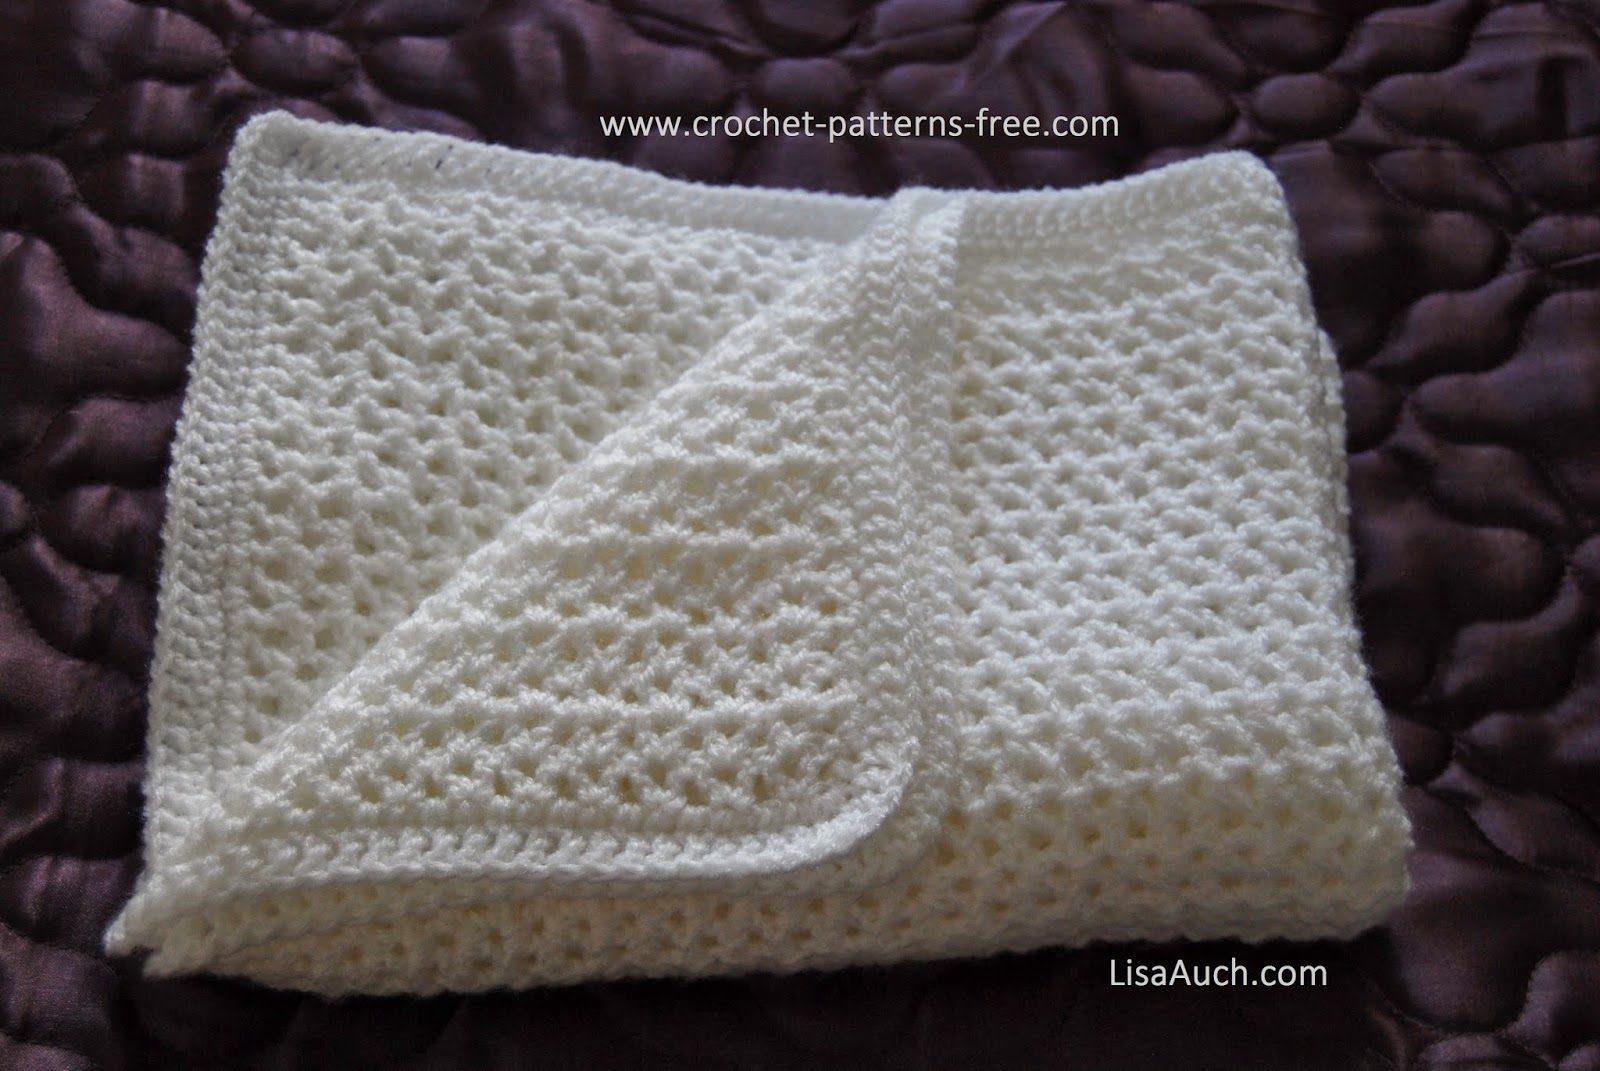 How To Crochet An Easy Baby Blanket Ideal For Beginners